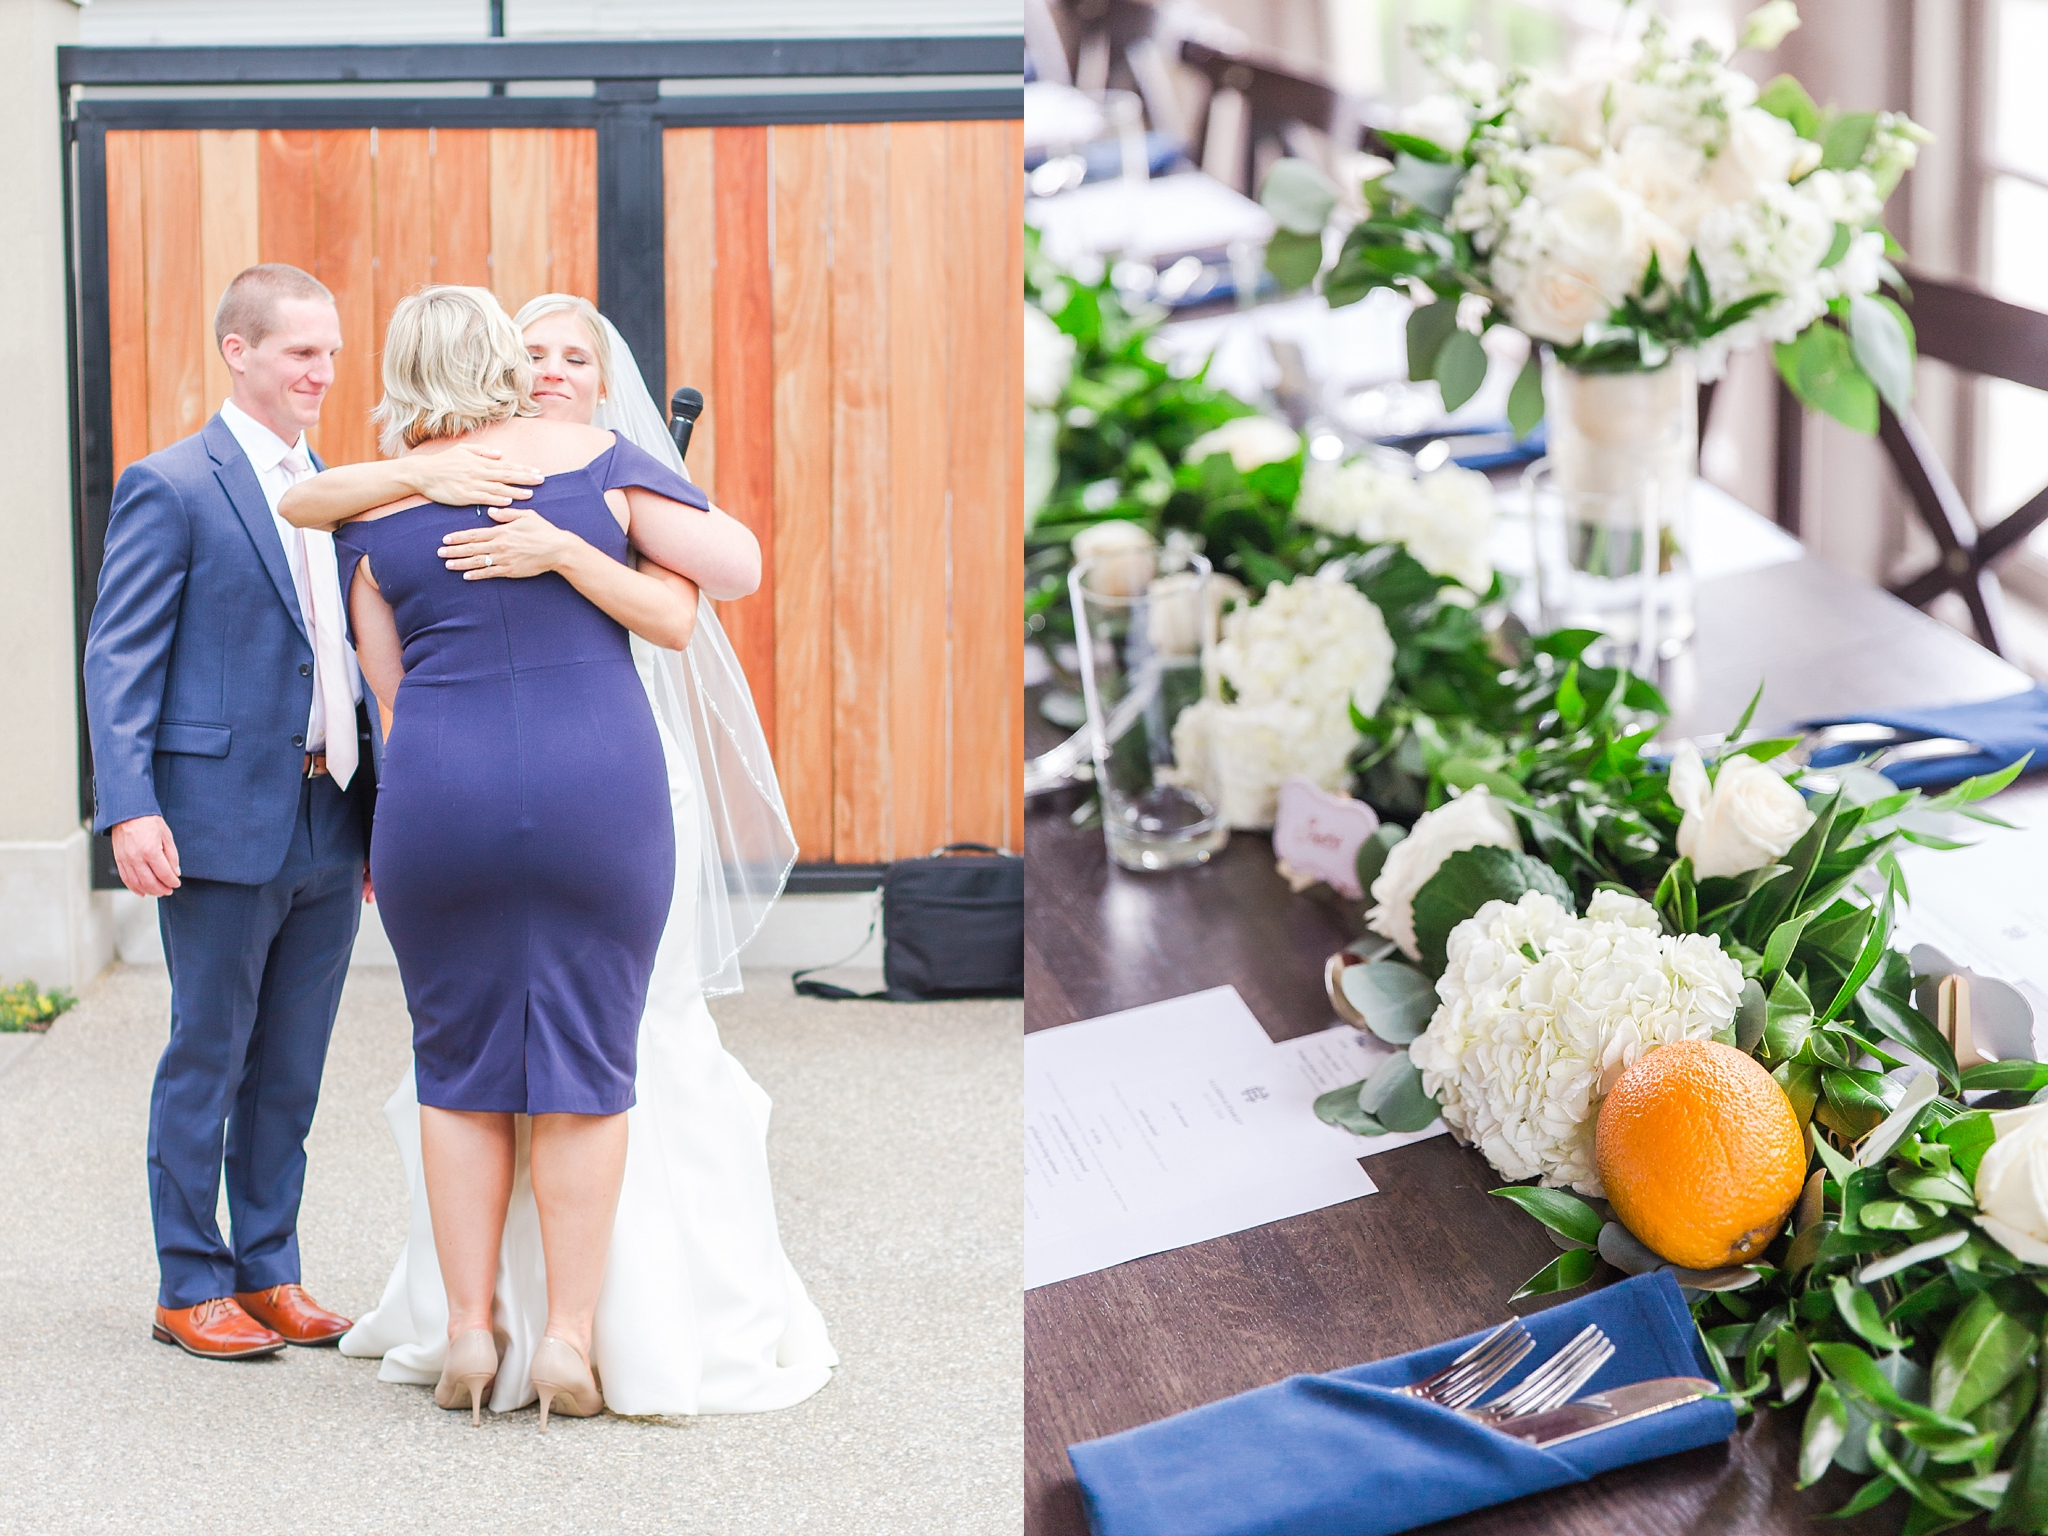 casually-chic-modern-wedding-photos-at-the-chapman-house-in-rochester-michigan-by-courtney-carolyn-photography_0058.jpg